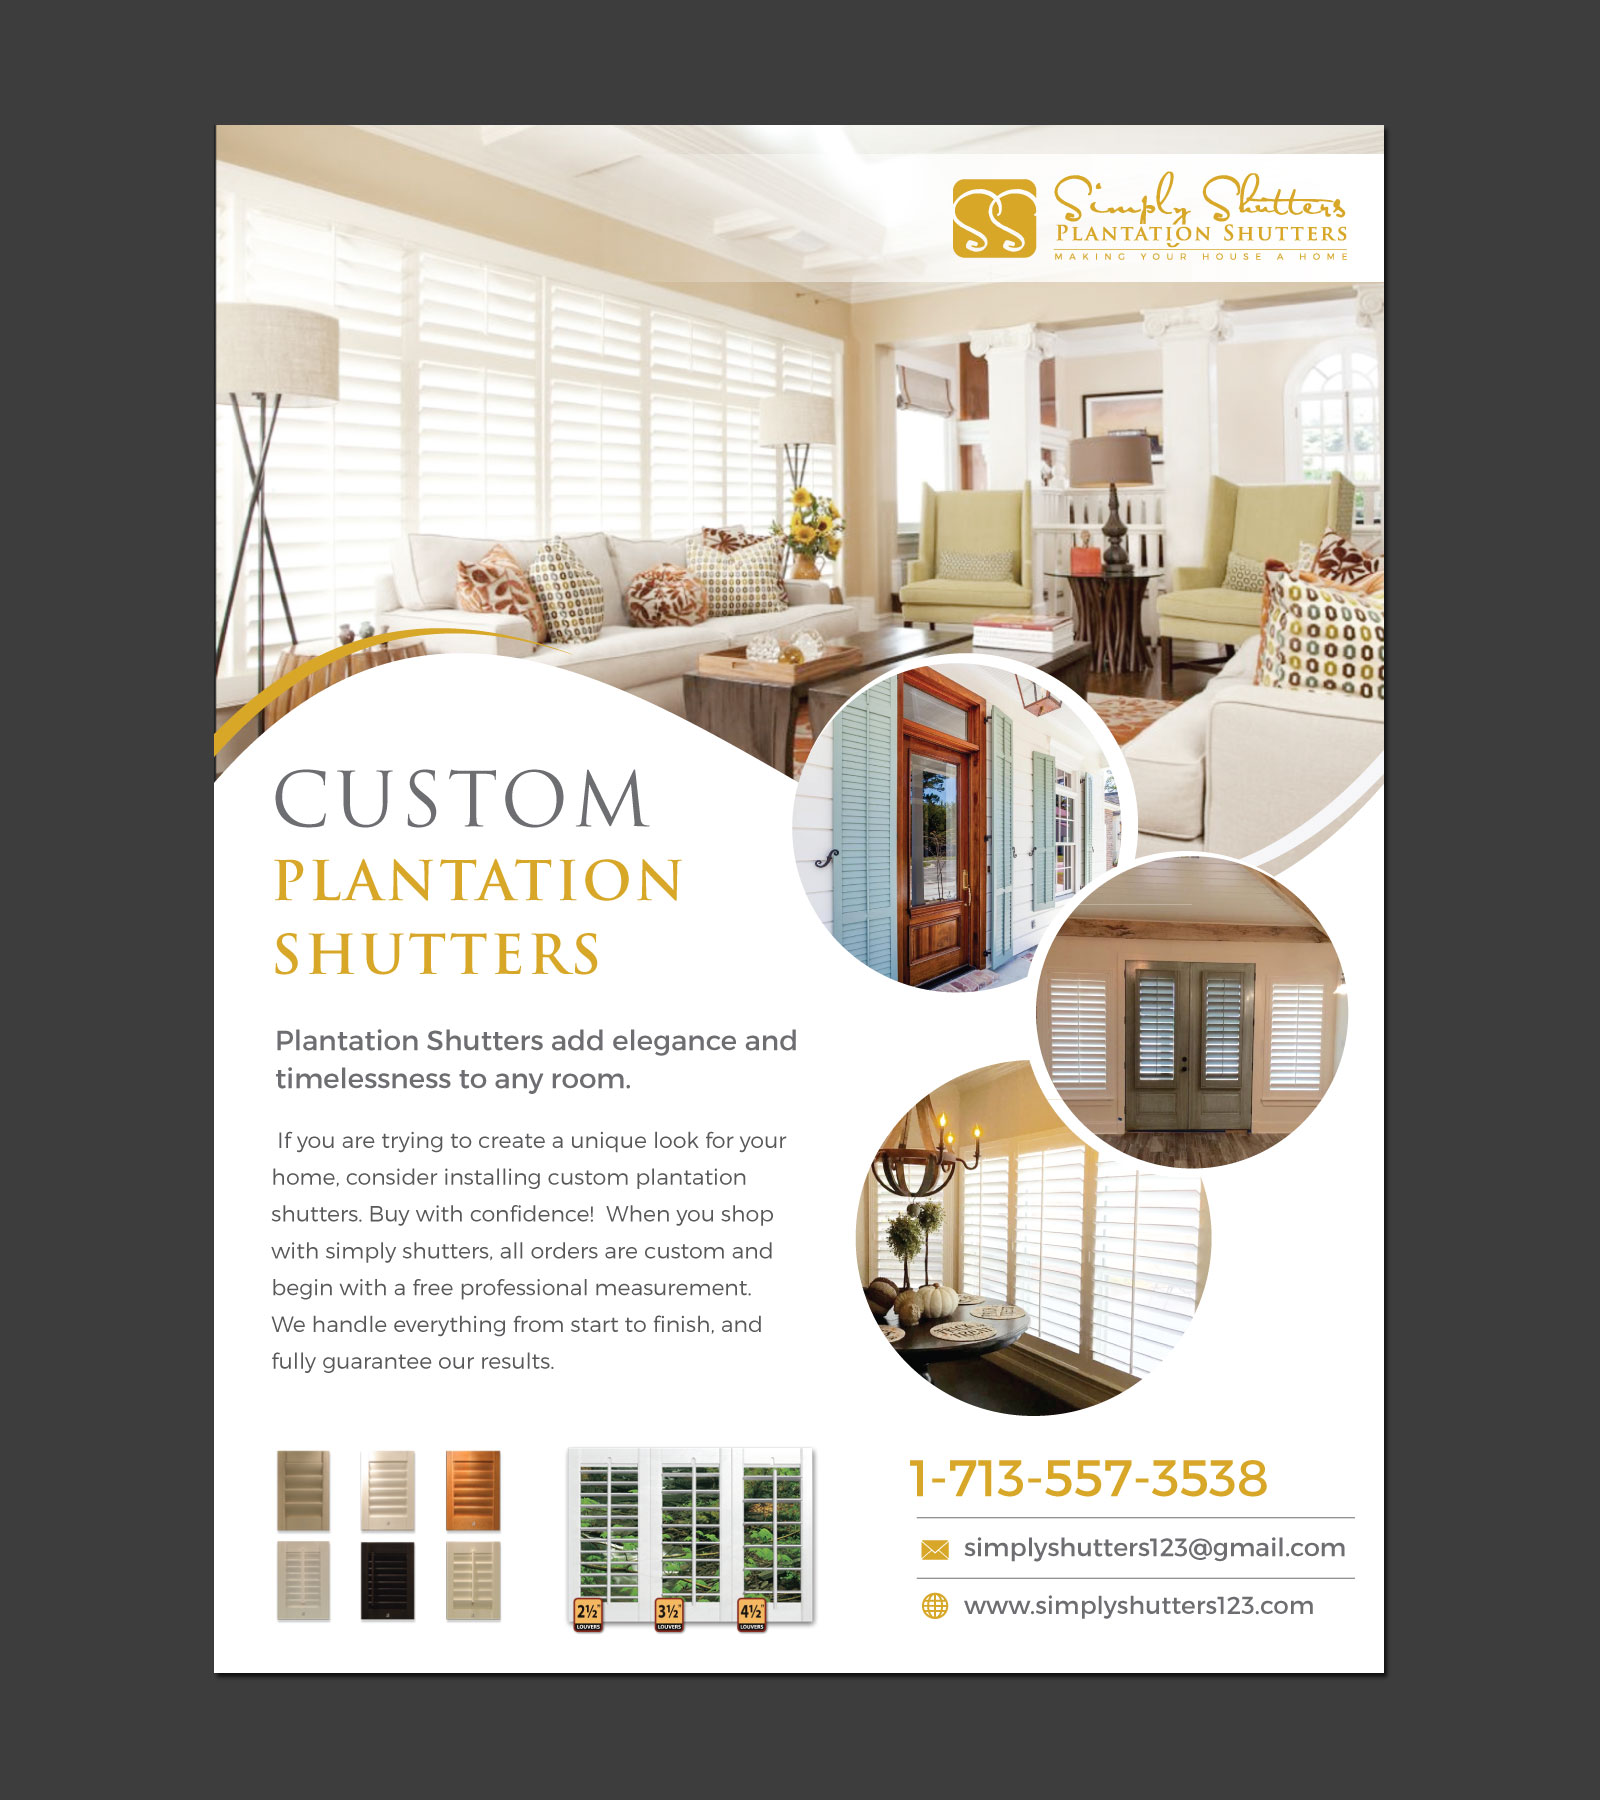 Magazine add for plantation shutter company- Simply Shutters - Home and Garden